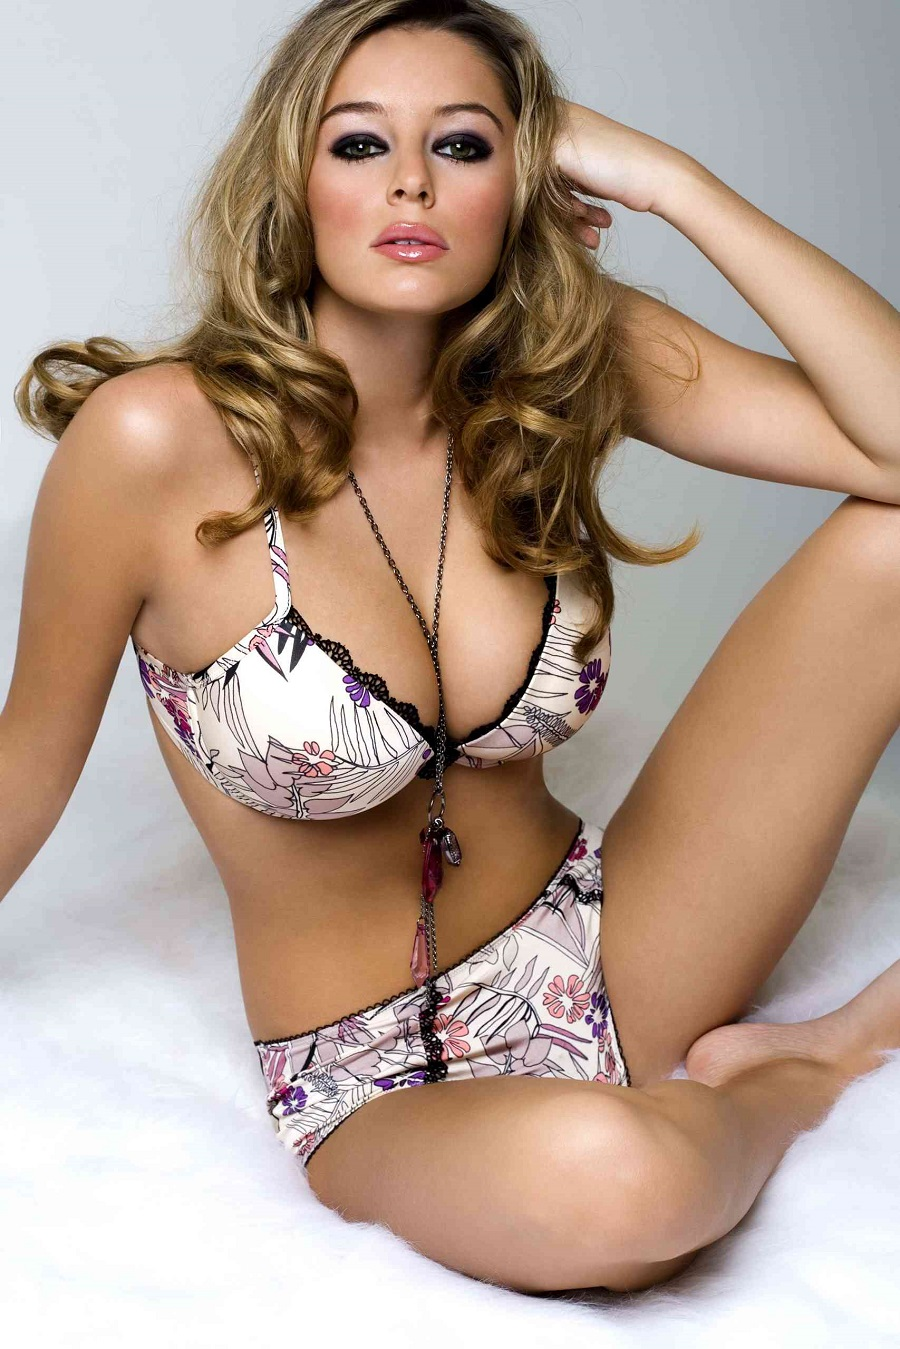 With the WPT and HPT rolling back the years to 2009 with big turn-outs, so will we with some vintage Keeley Hazell.